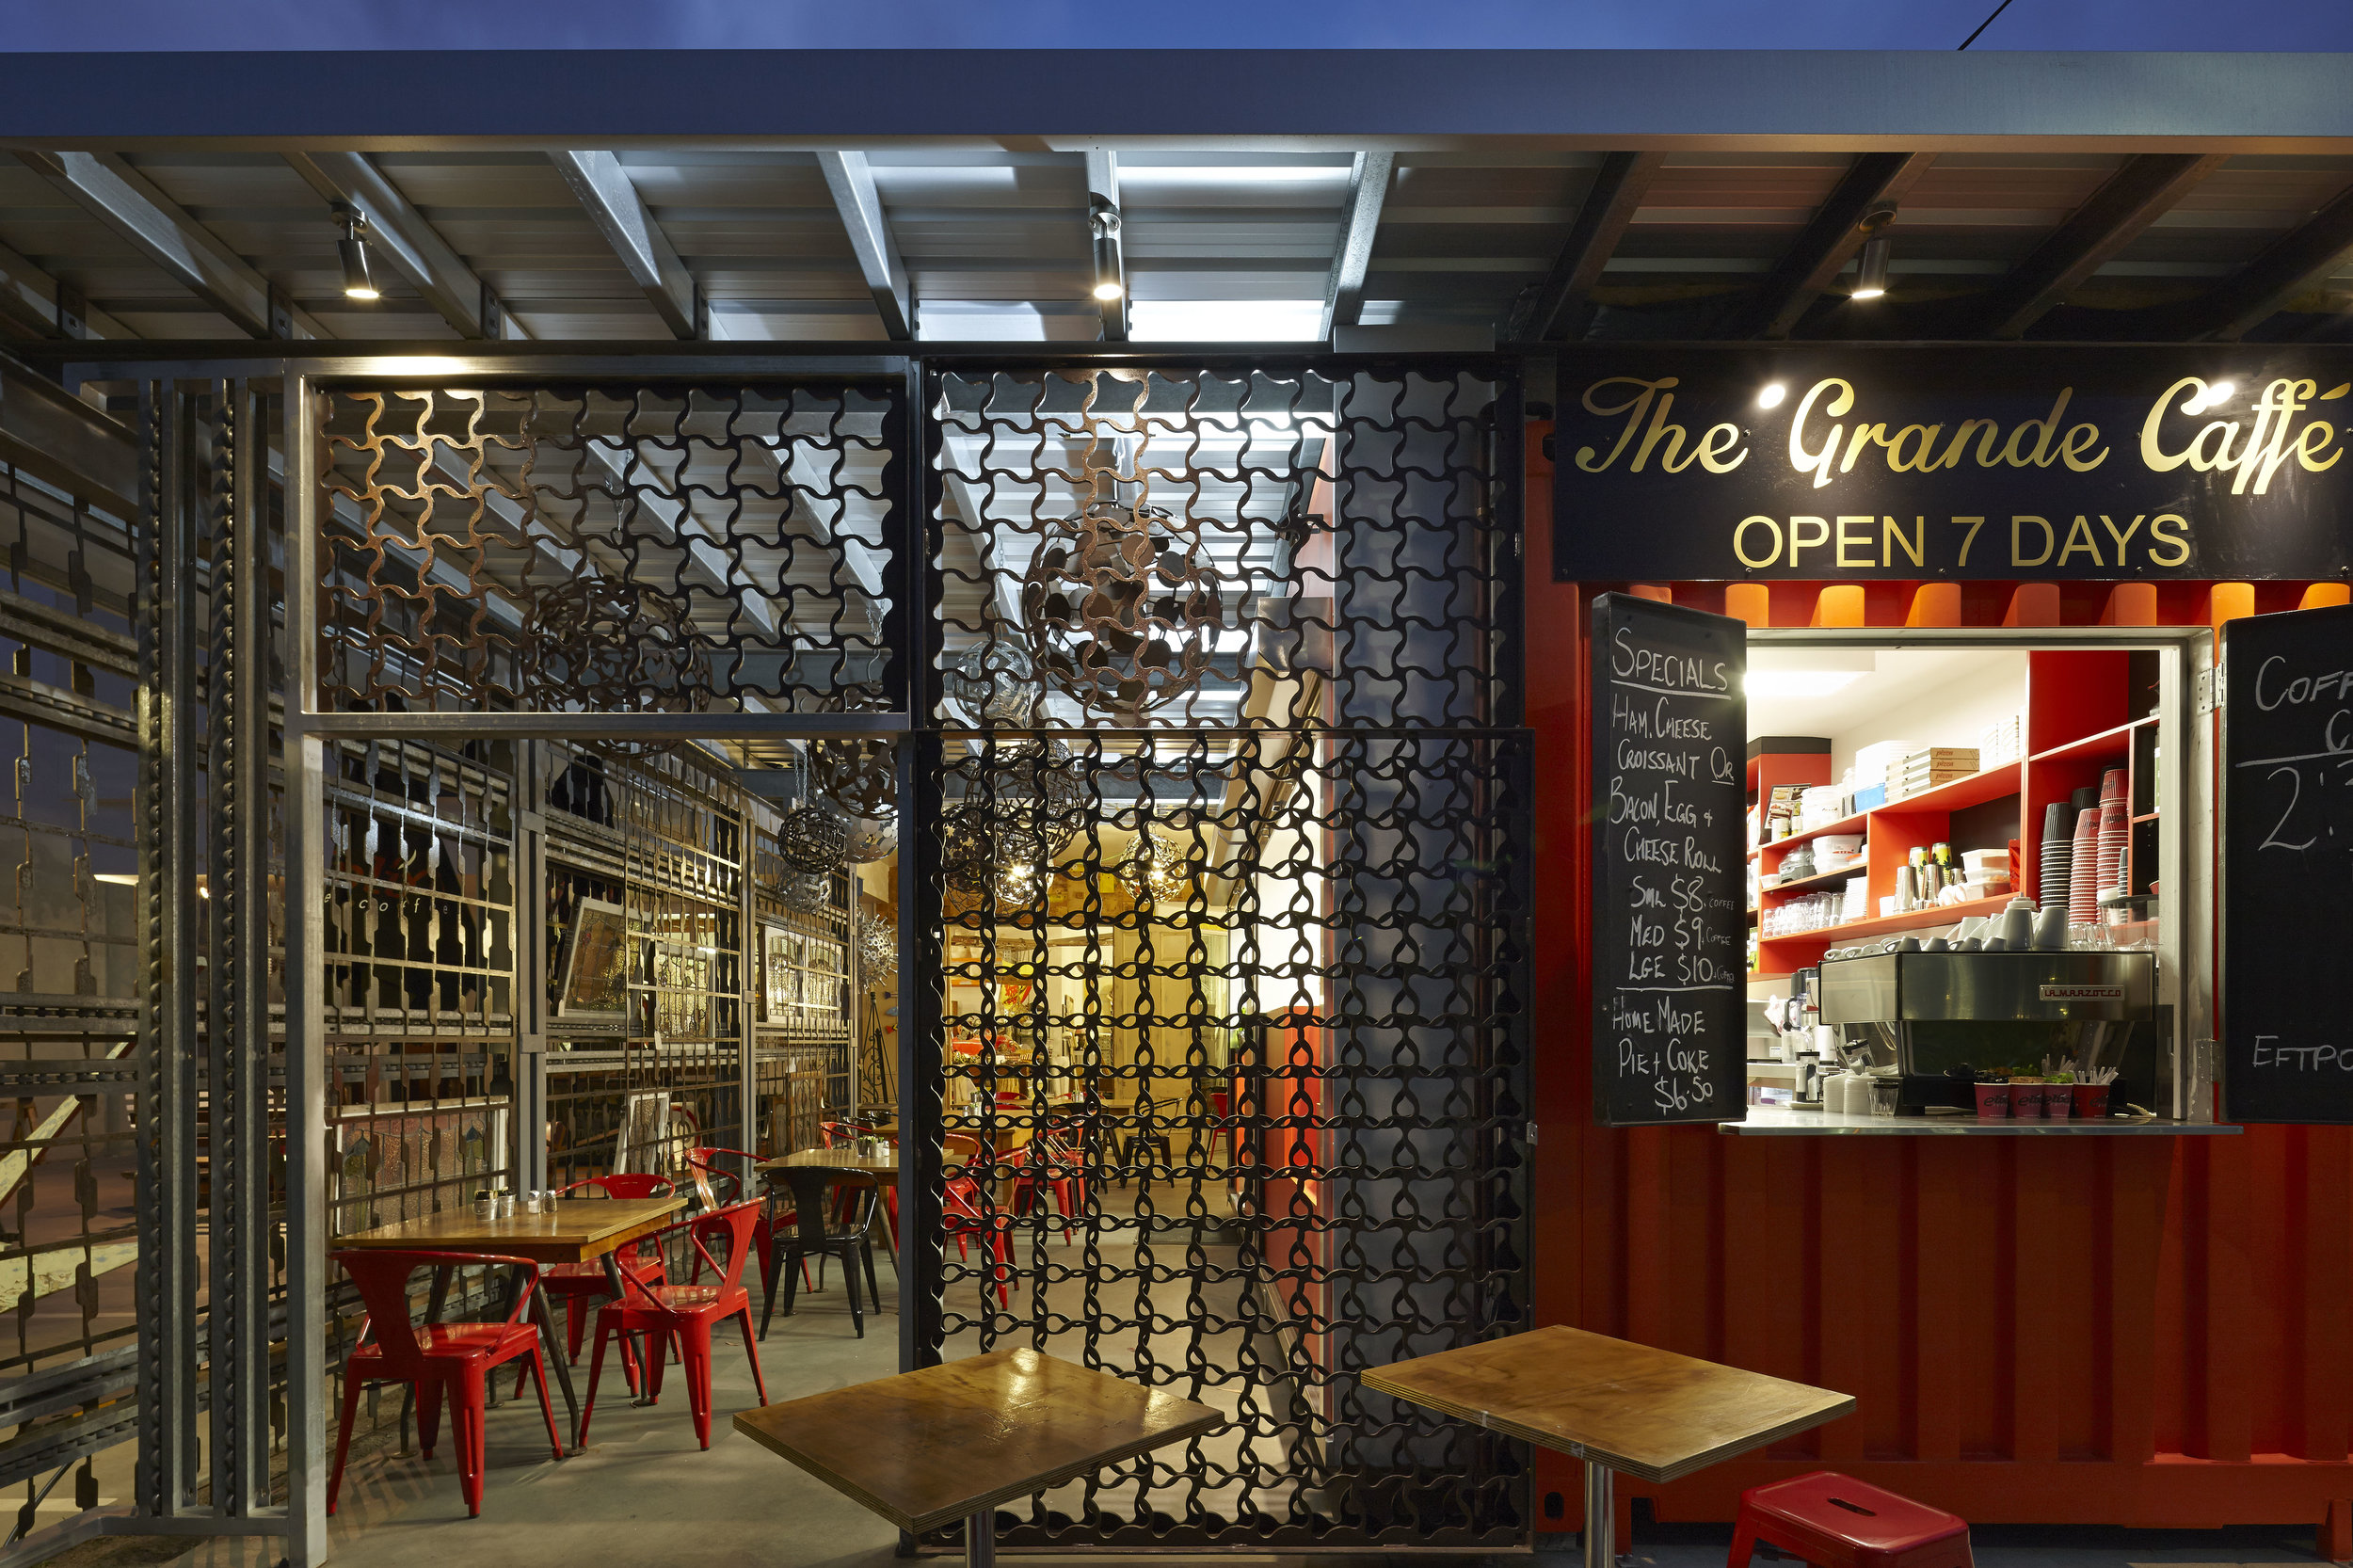 Guymer-bailey-architects-Grand-Ideas-cafe-commercial-03.jpg